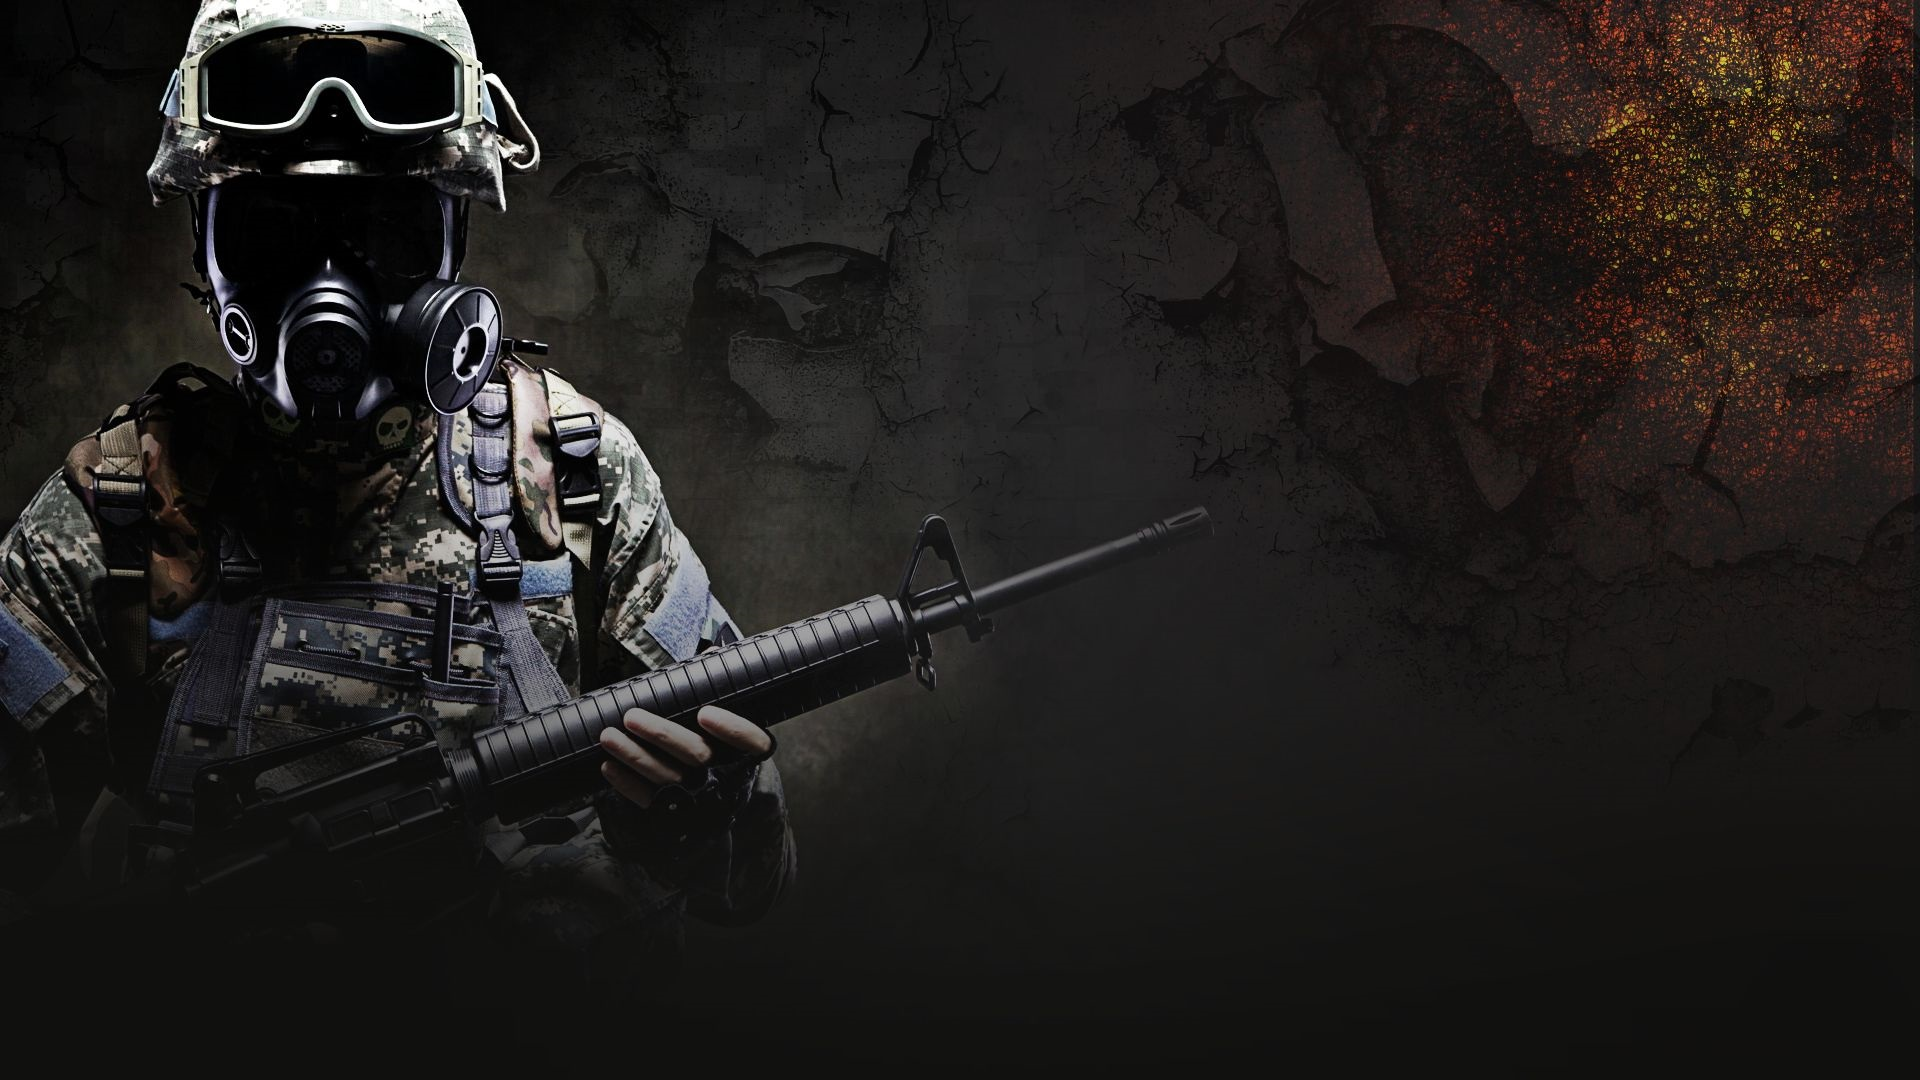 Download wallpaper for 1600x900 resolution CS GO soldier 1920x1080